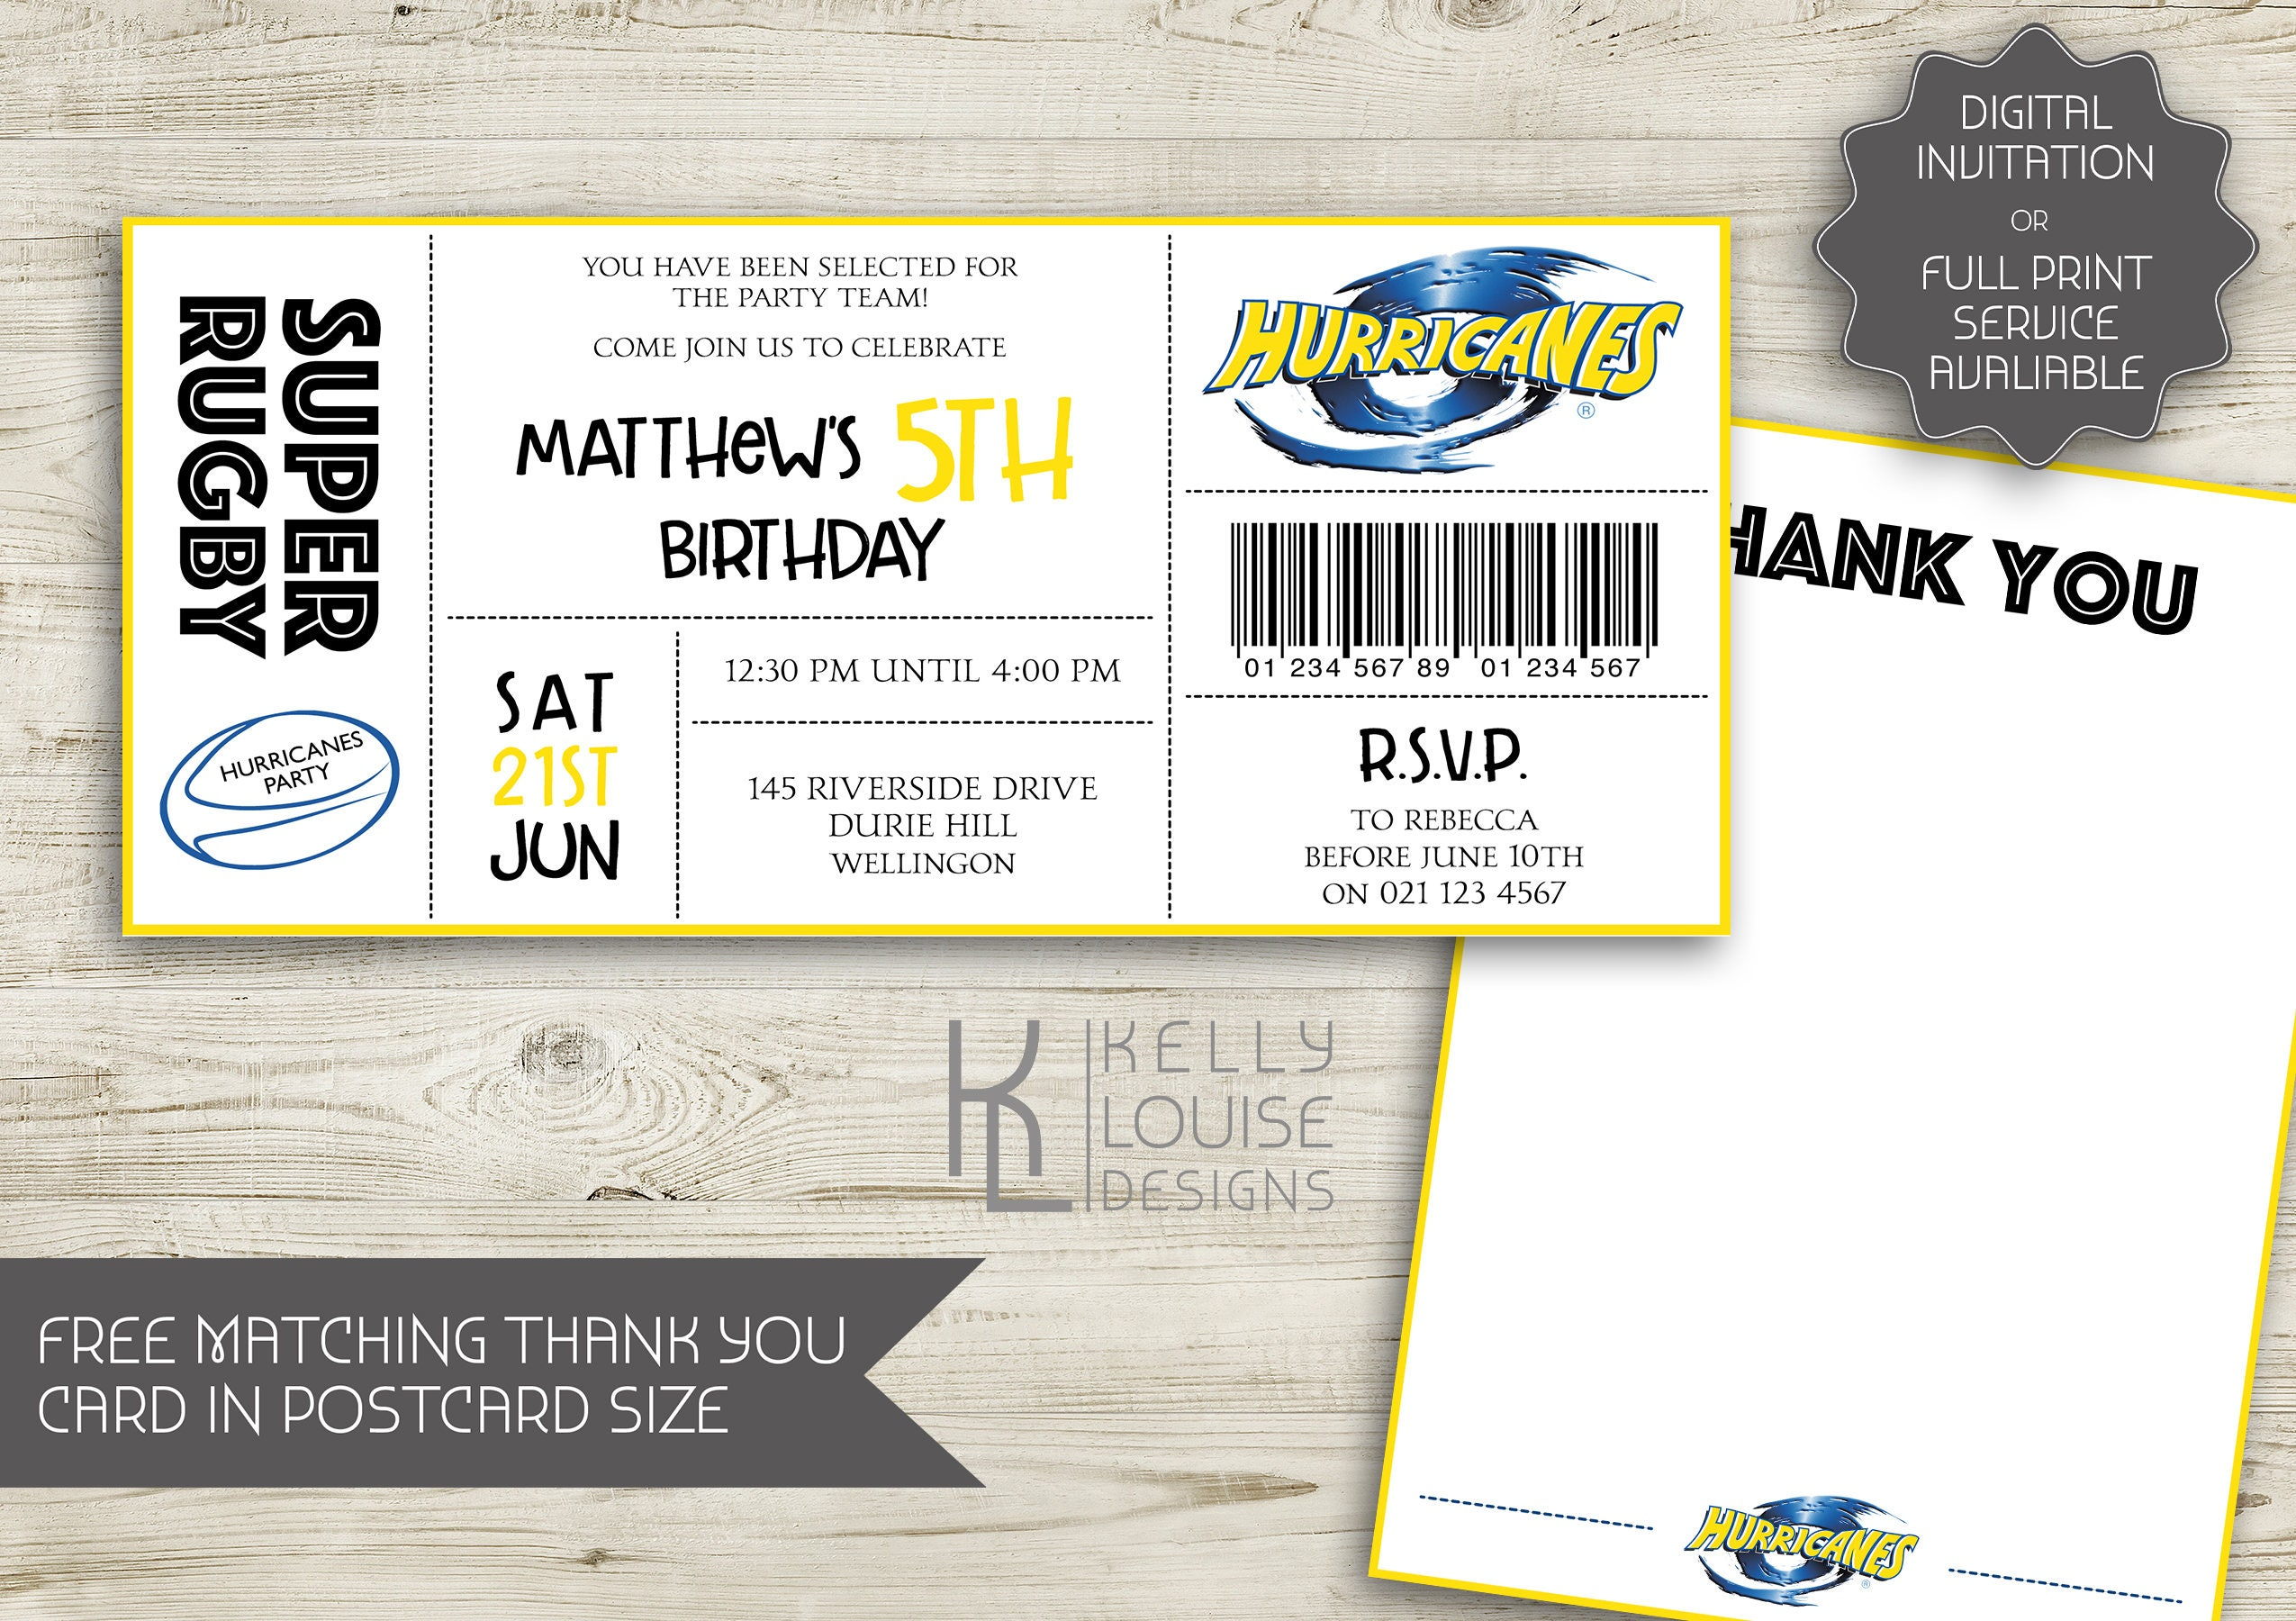 Hurricanes birthday invitation rugby birthday party new zealand hurricanes birthday invitation rugby birthday party new zealand rugby super rugby party rugby ticket invitation nz rugby 164 stopboris Choice Image